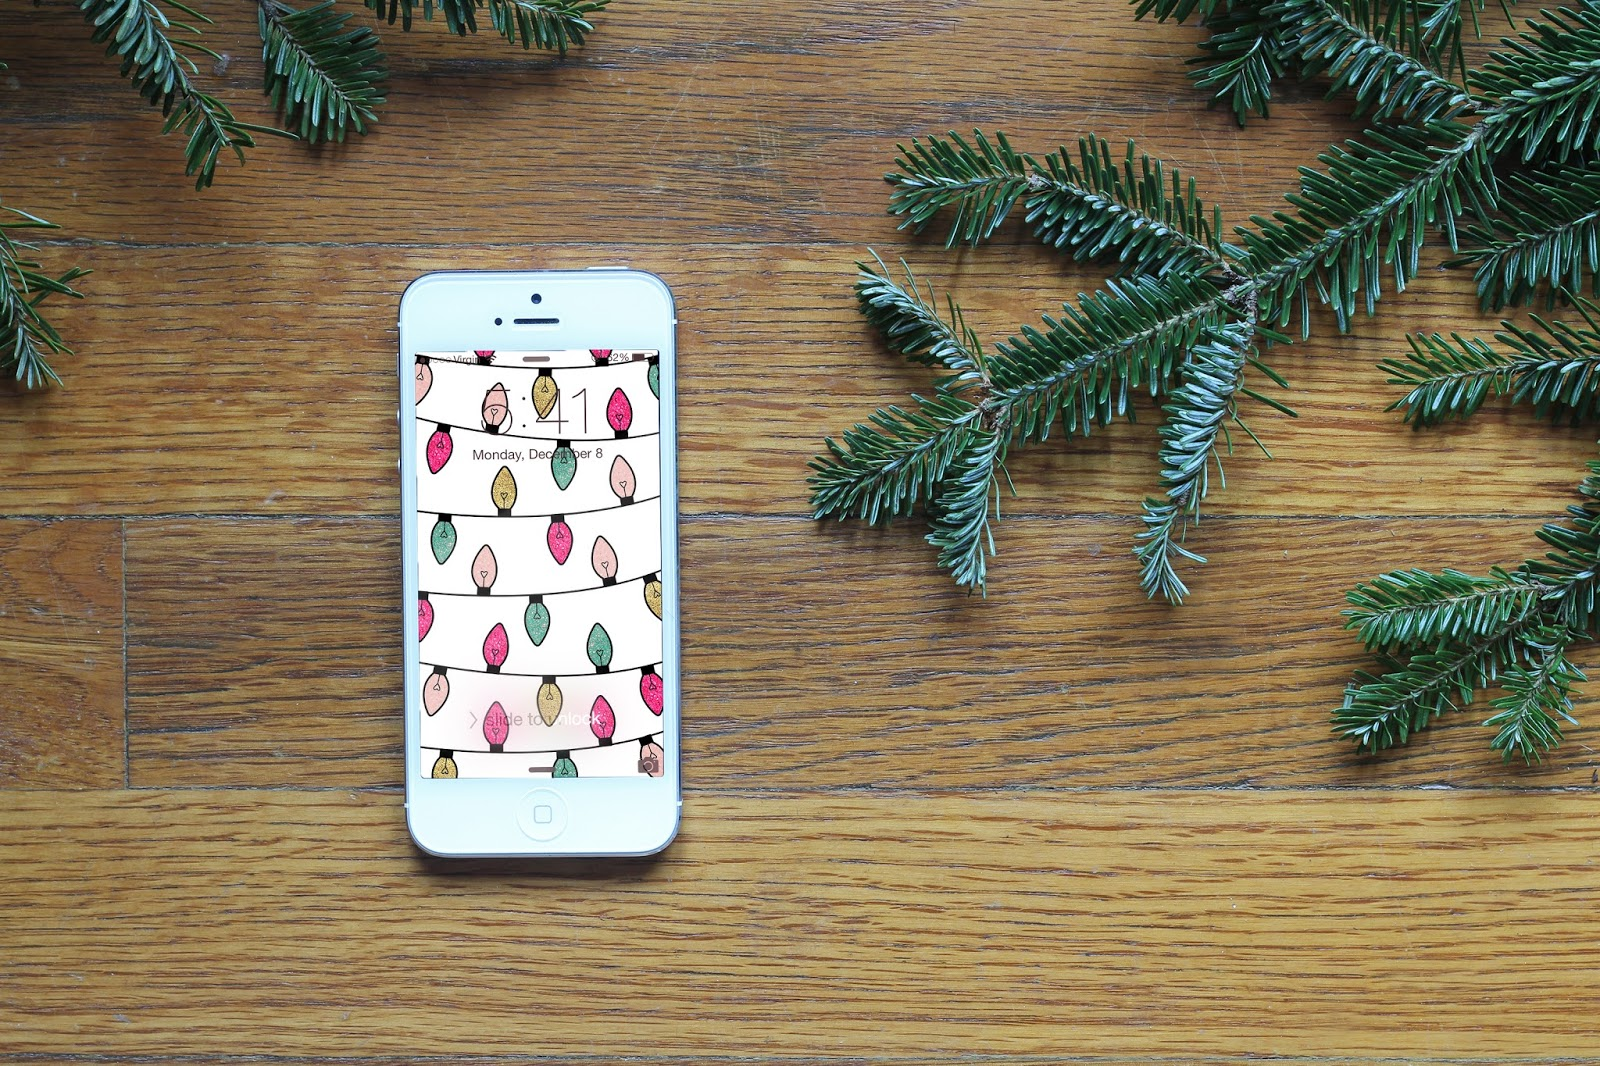 We Can Make Anything: Christmas Iphone Wallpapers